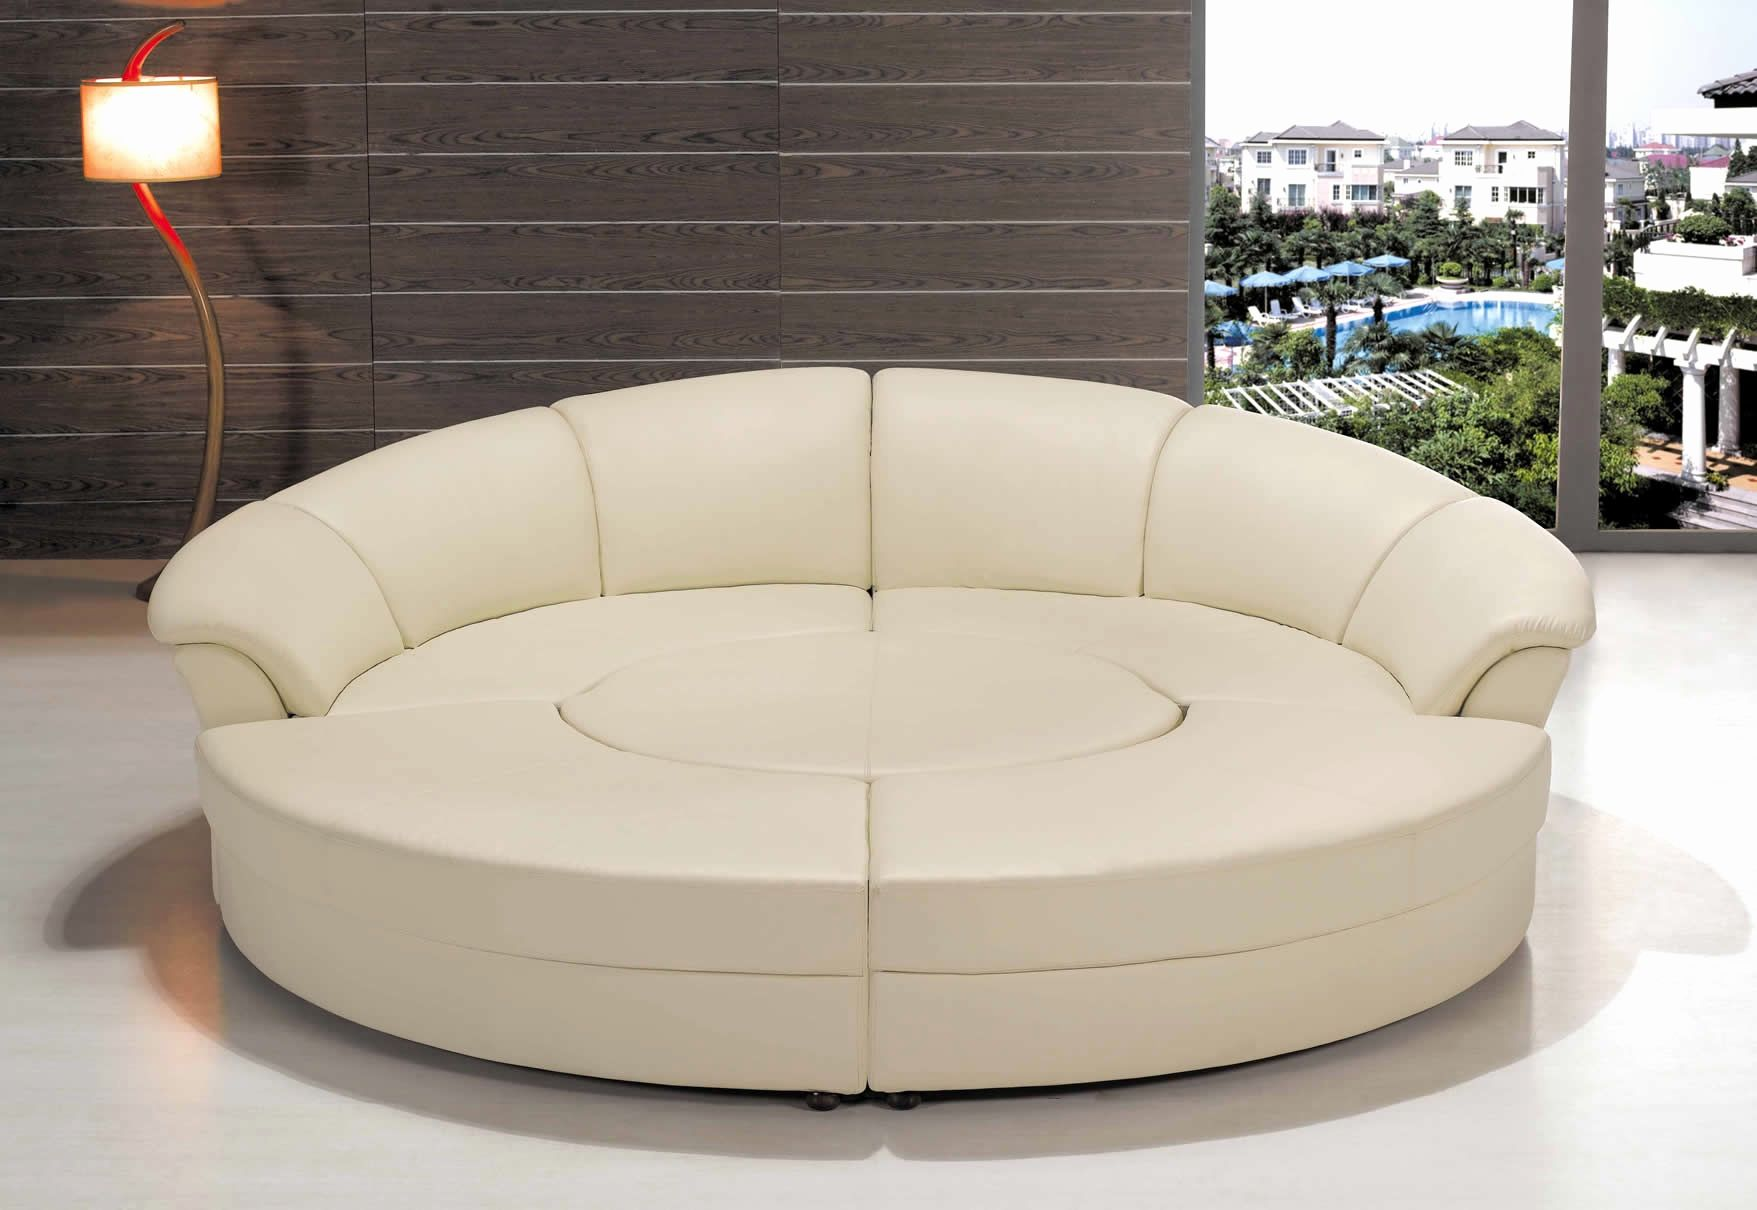 Beautiful Round Sofa Set Designs Art